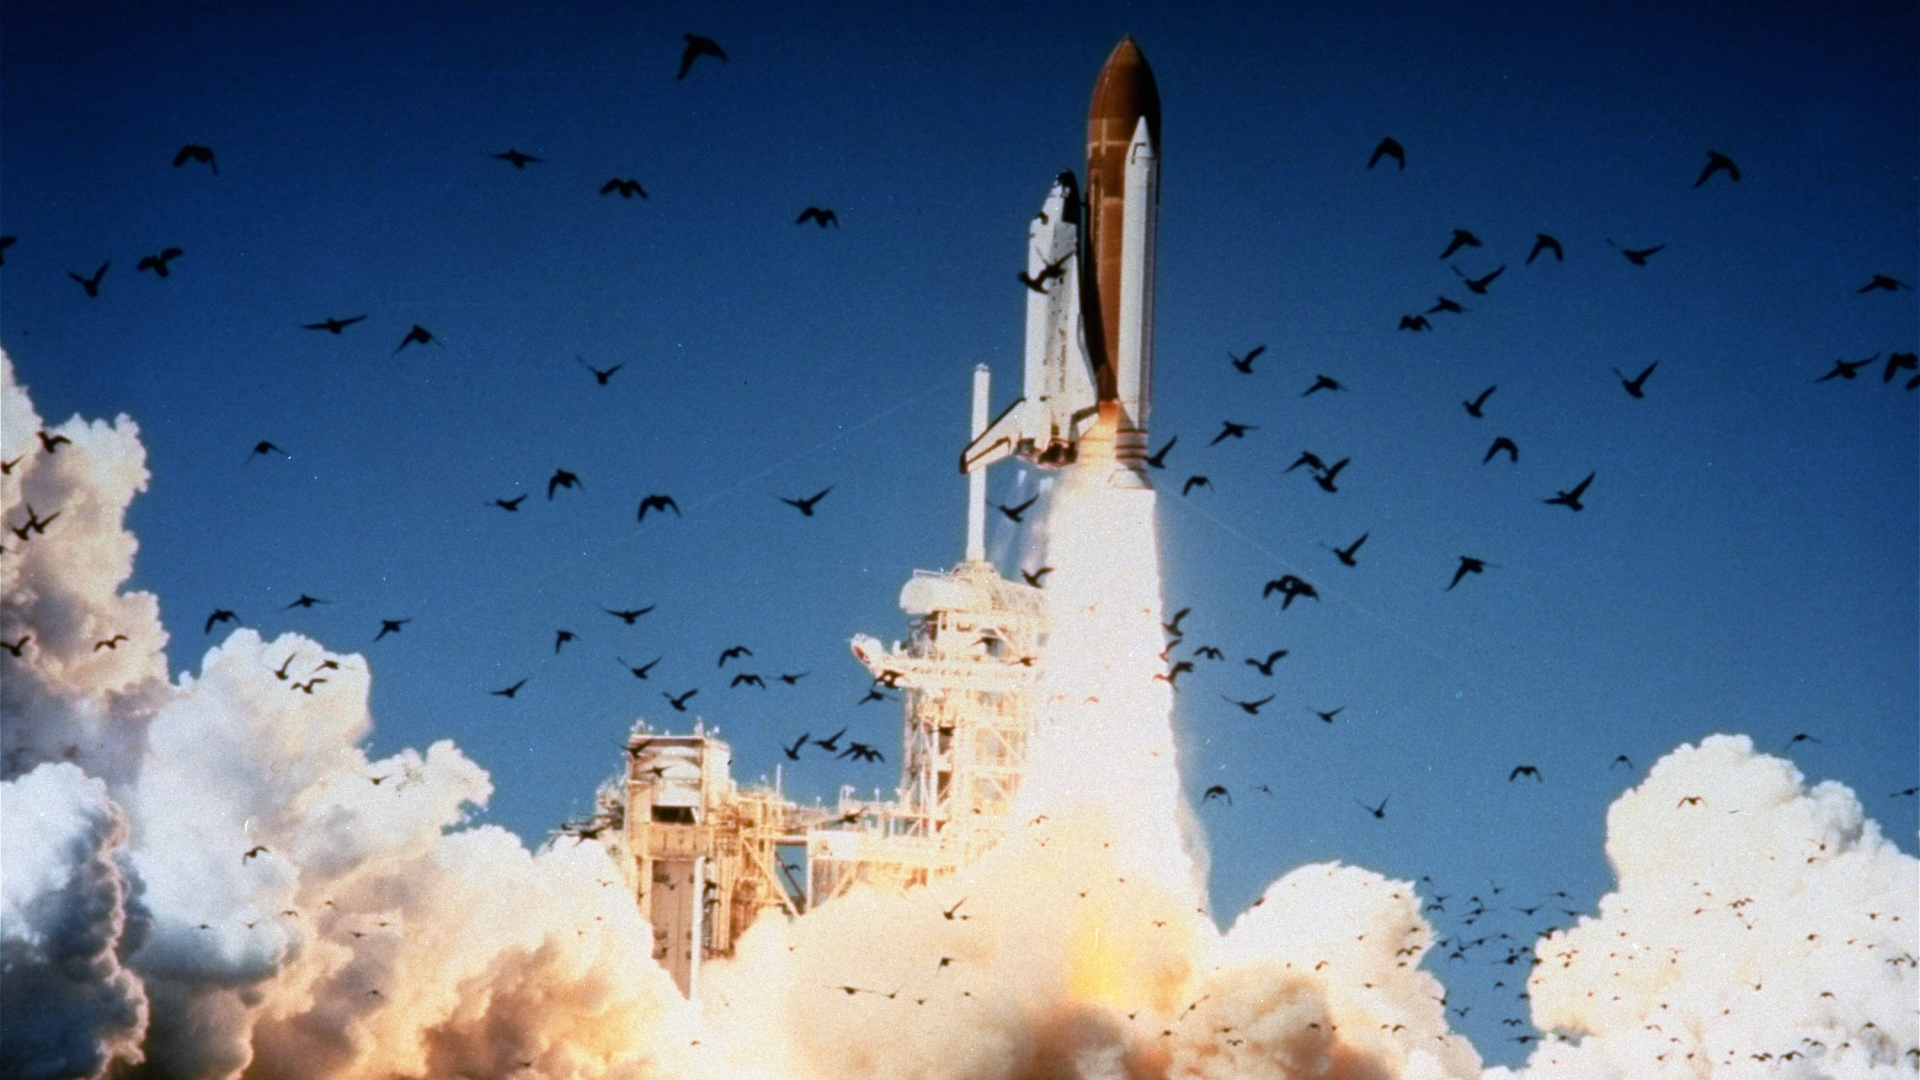 the events leading to the challenger explosion Consider the events leading up to the challenger disaster and briefly outline what you believe were the fundamental problems in the decision making process.